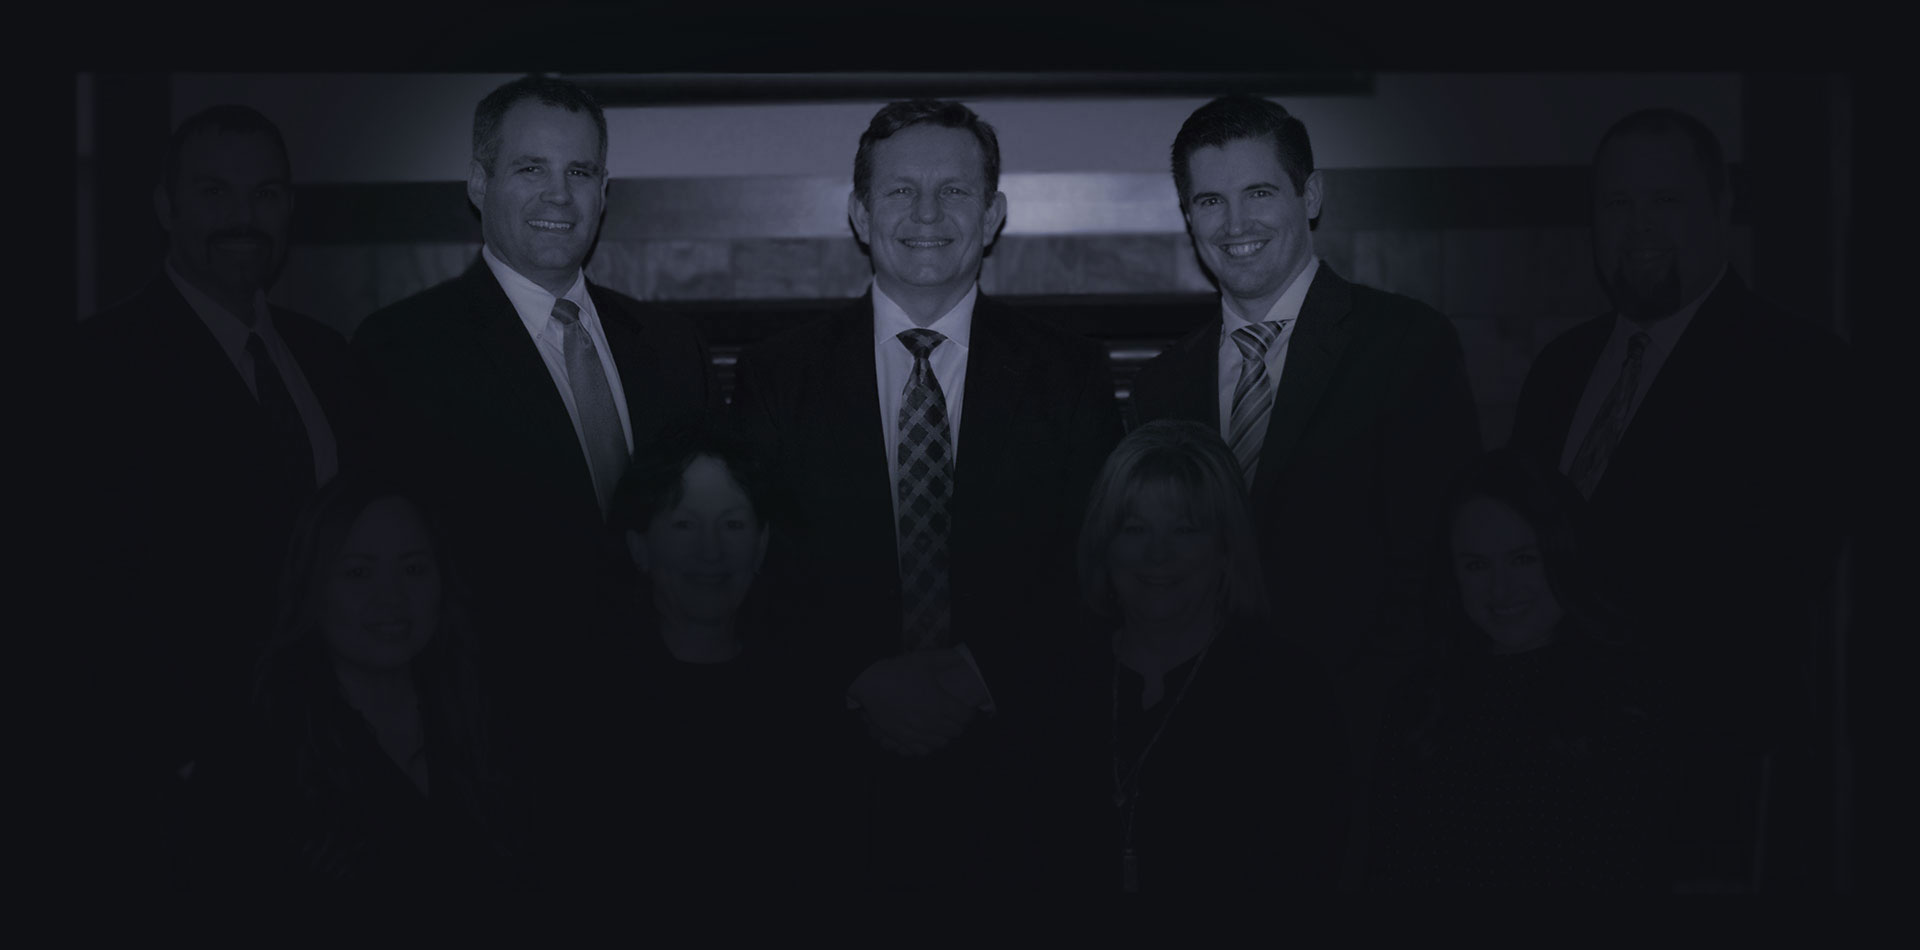 Personal Injury Law Firm Team